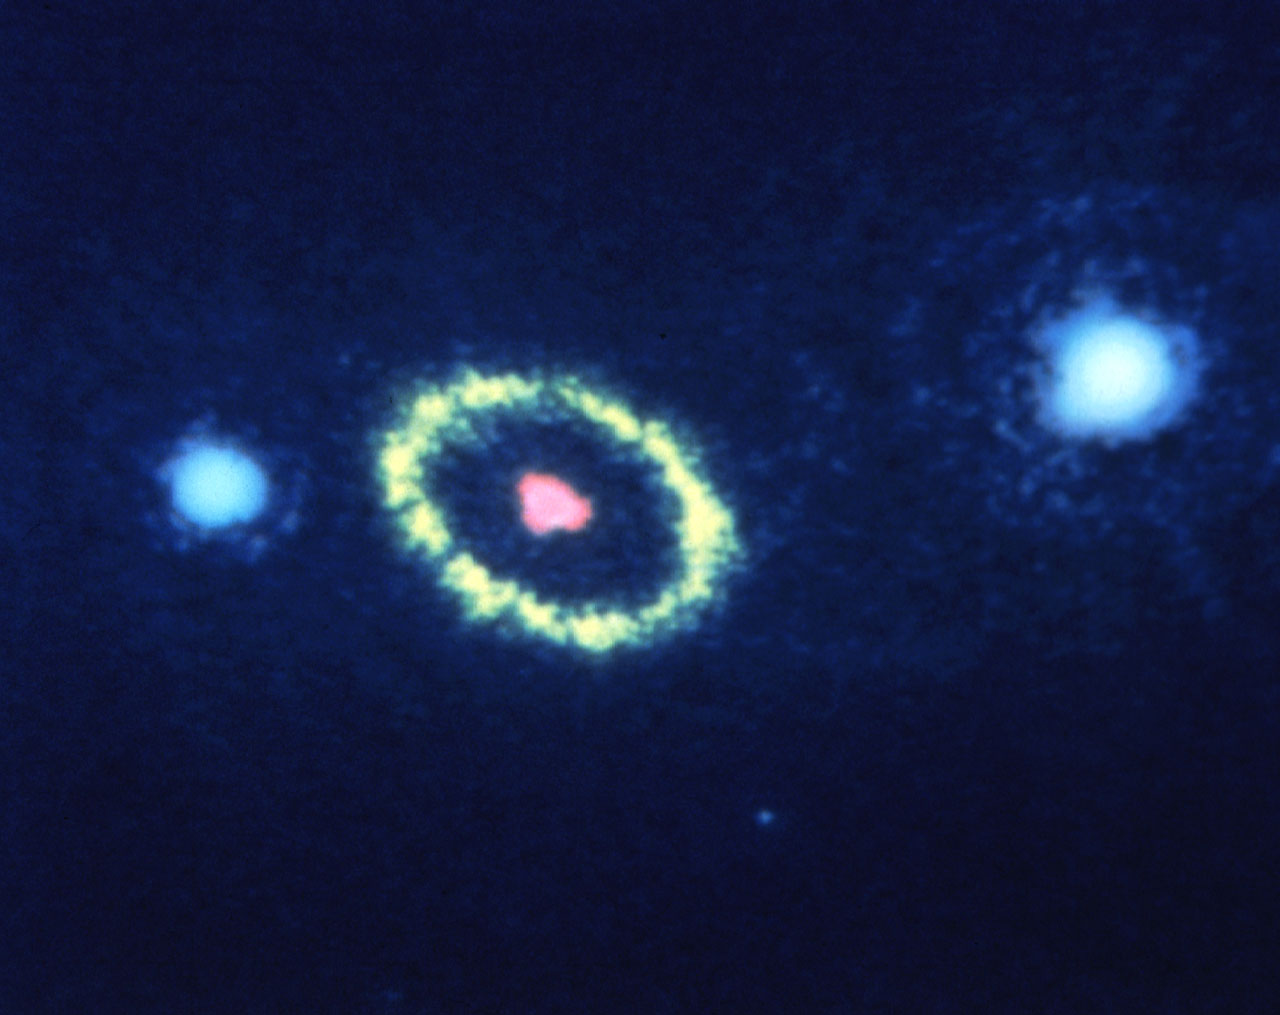 Hubble Space Telescope resolves gaseous ring around supernova | ESA/Hubble